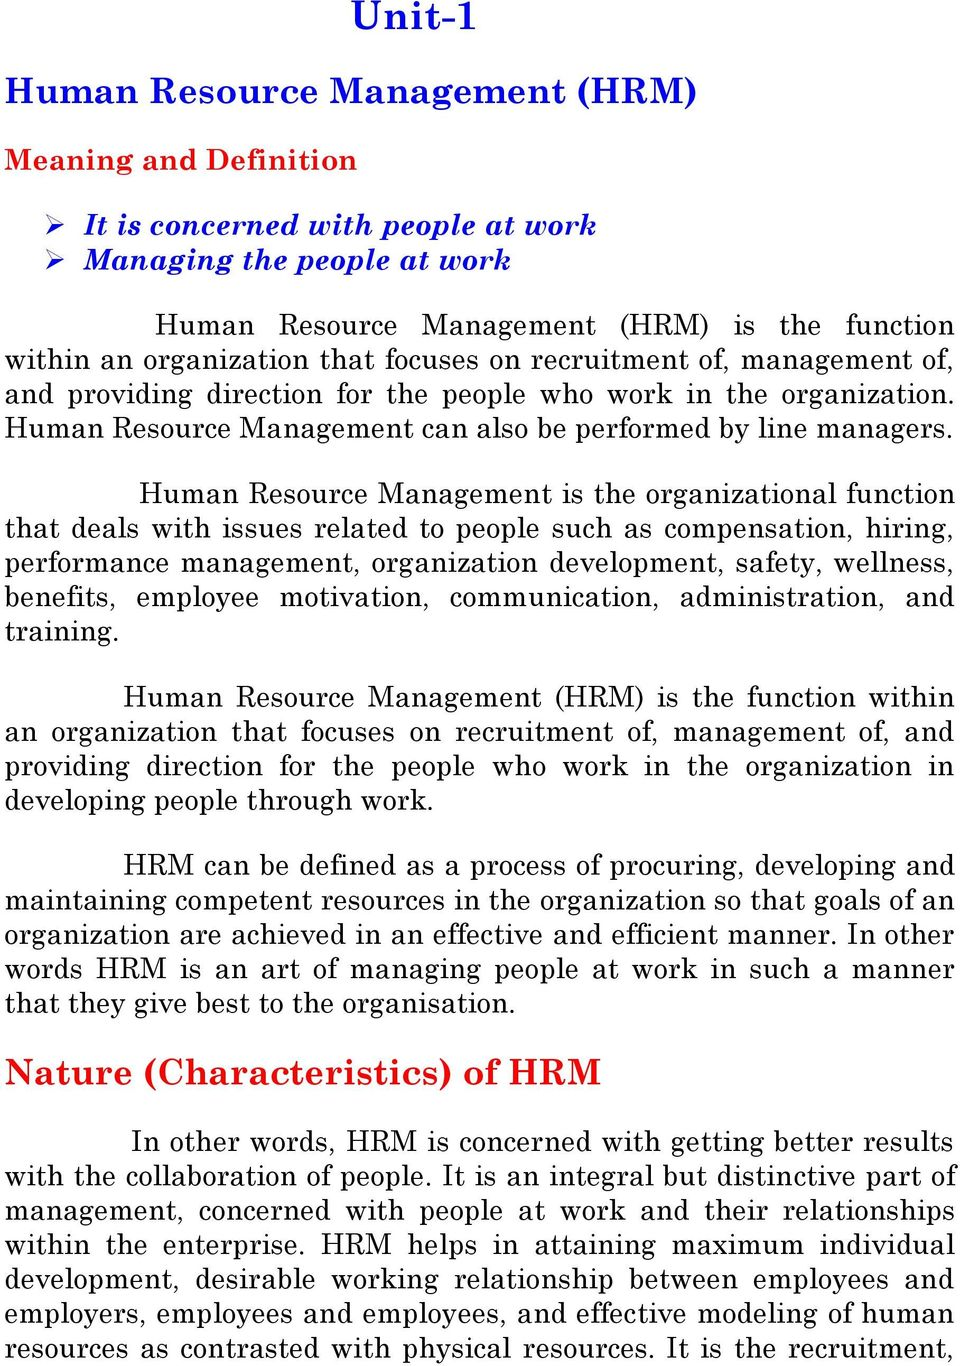 Human Resource Management is the organizational function that deals with issues related to people such as compensation, hiring, performance management, organization development, safety, wellness,